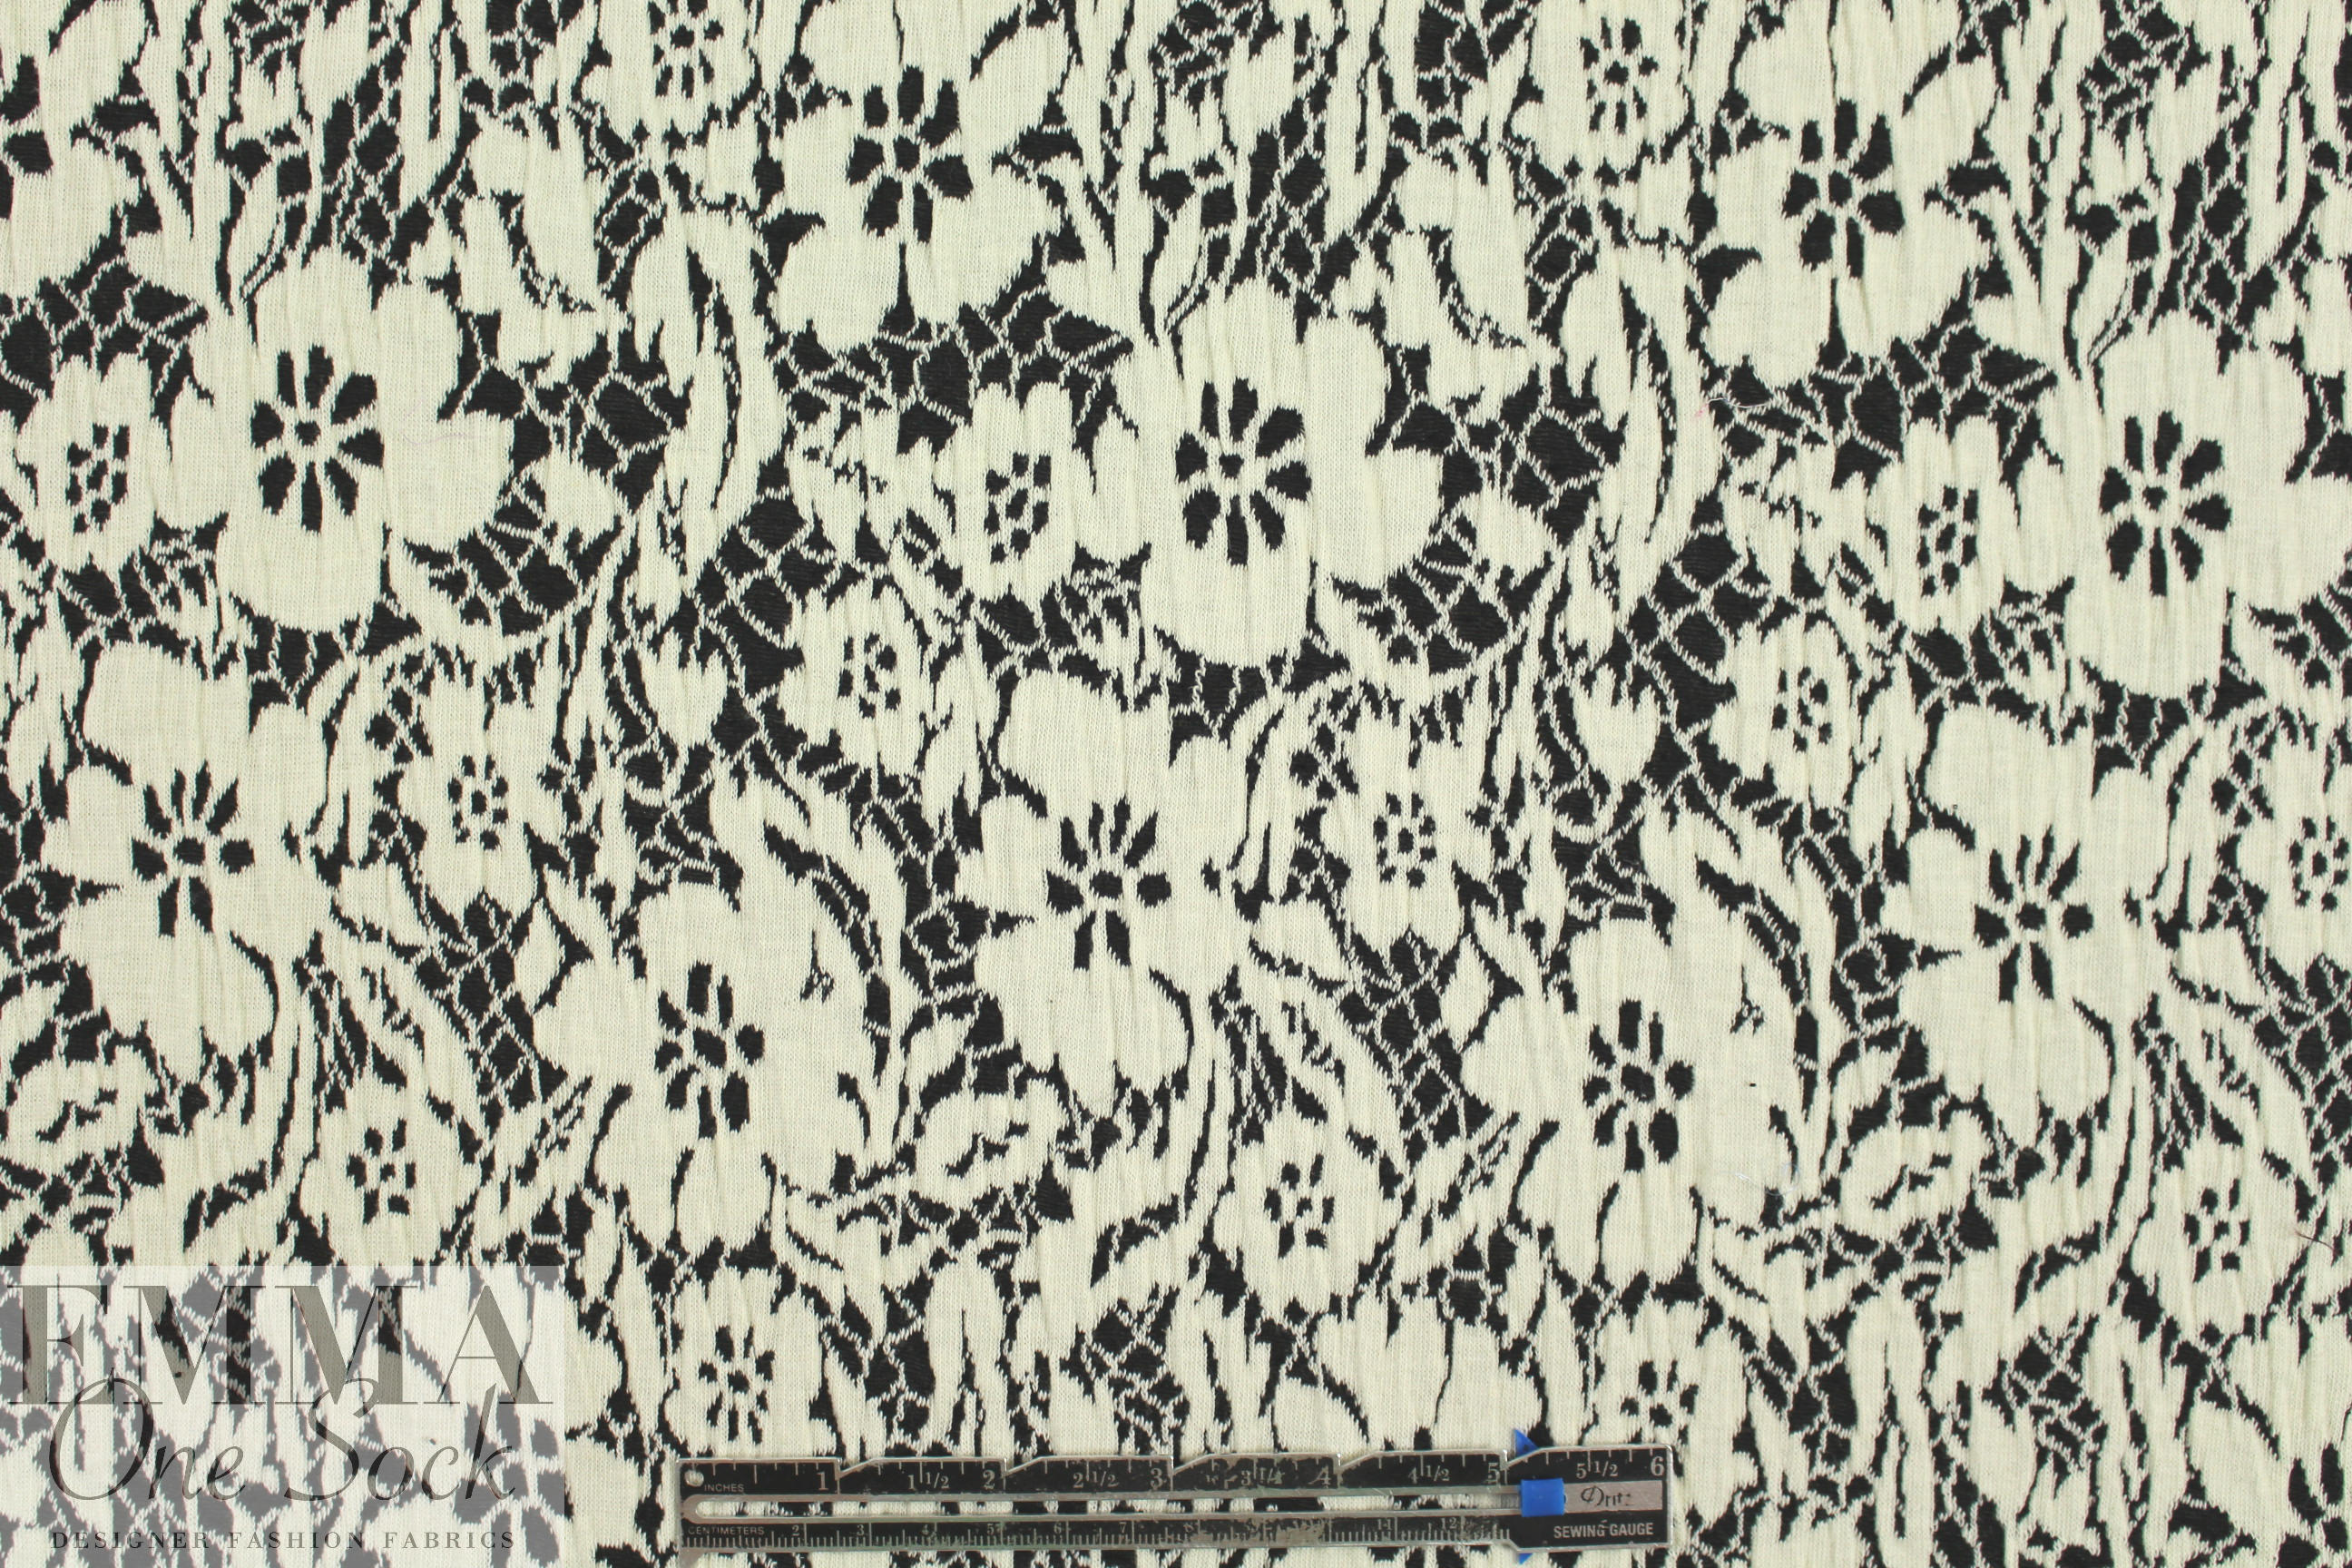 Ny Designer Black Ivory Floral 2 Ply Matelasse Knit From Wool Conversion Tables Fabric Photo